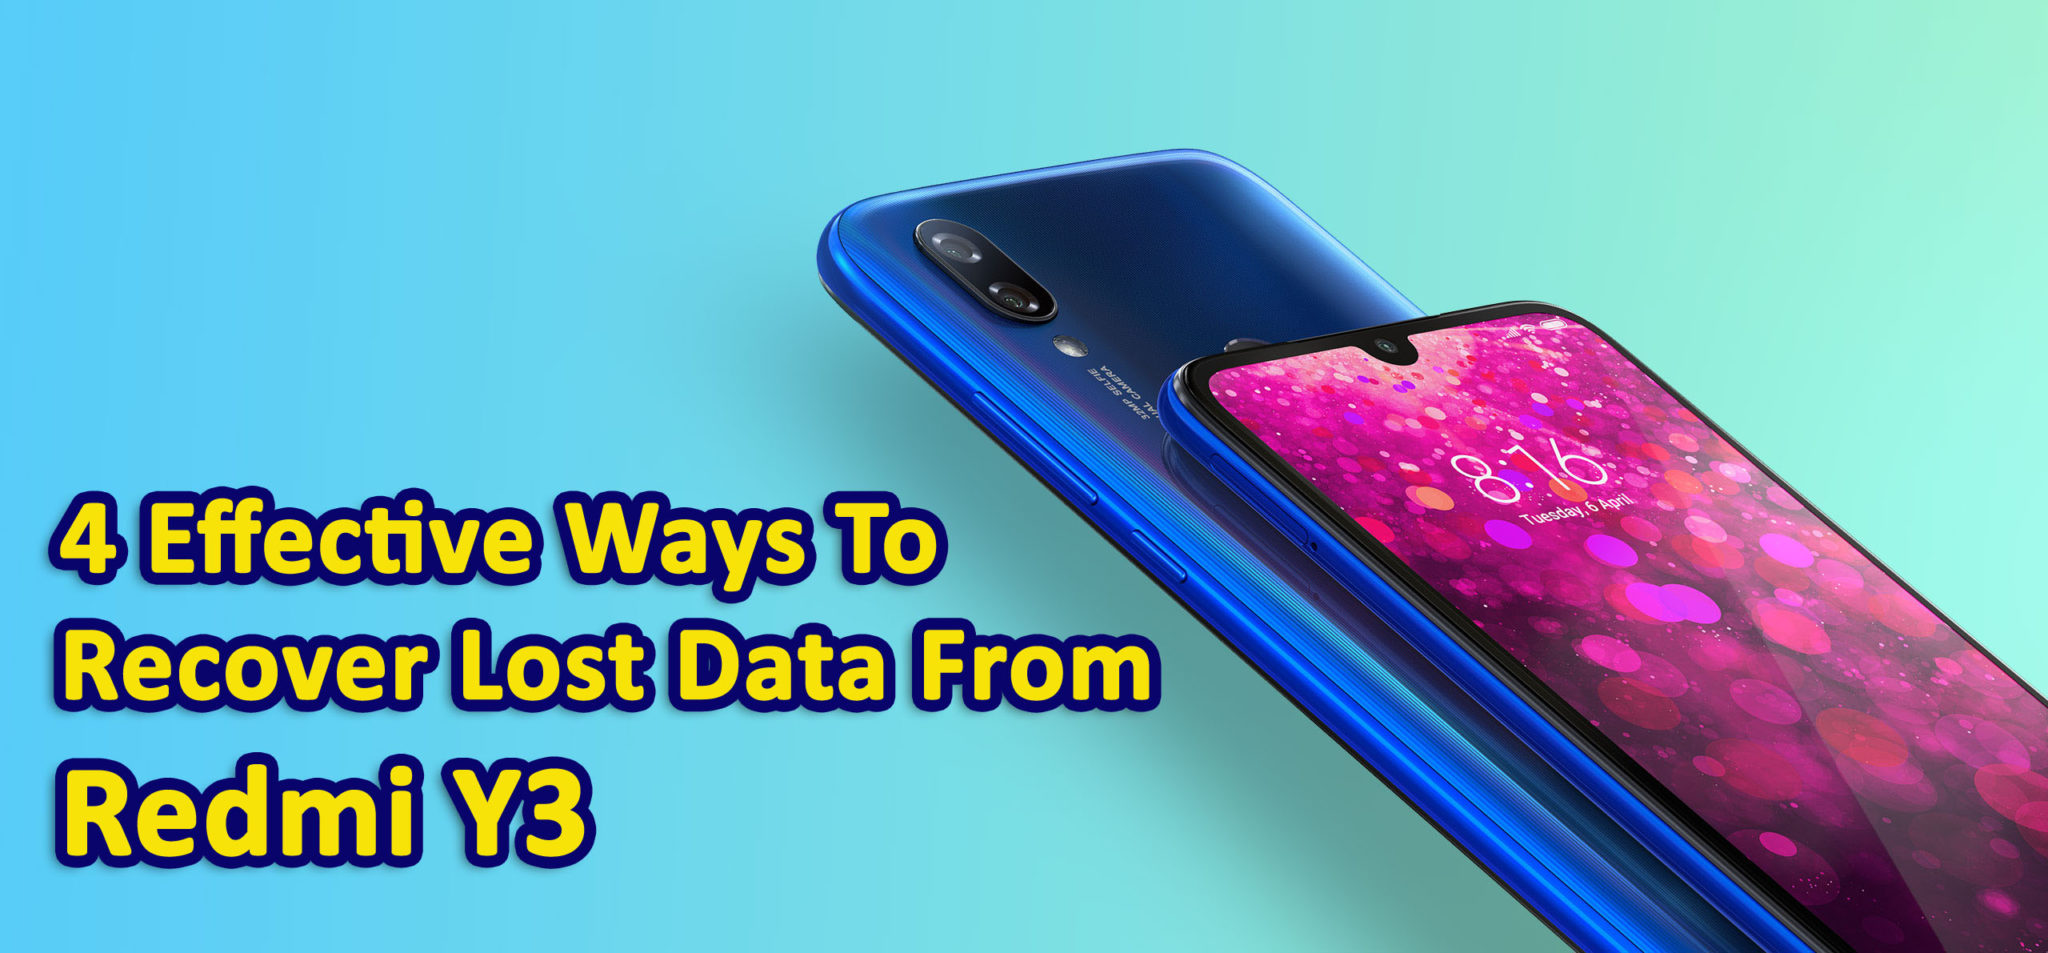 4 Effective Ways To Recover Lost Data From Redmi Y3 Phone